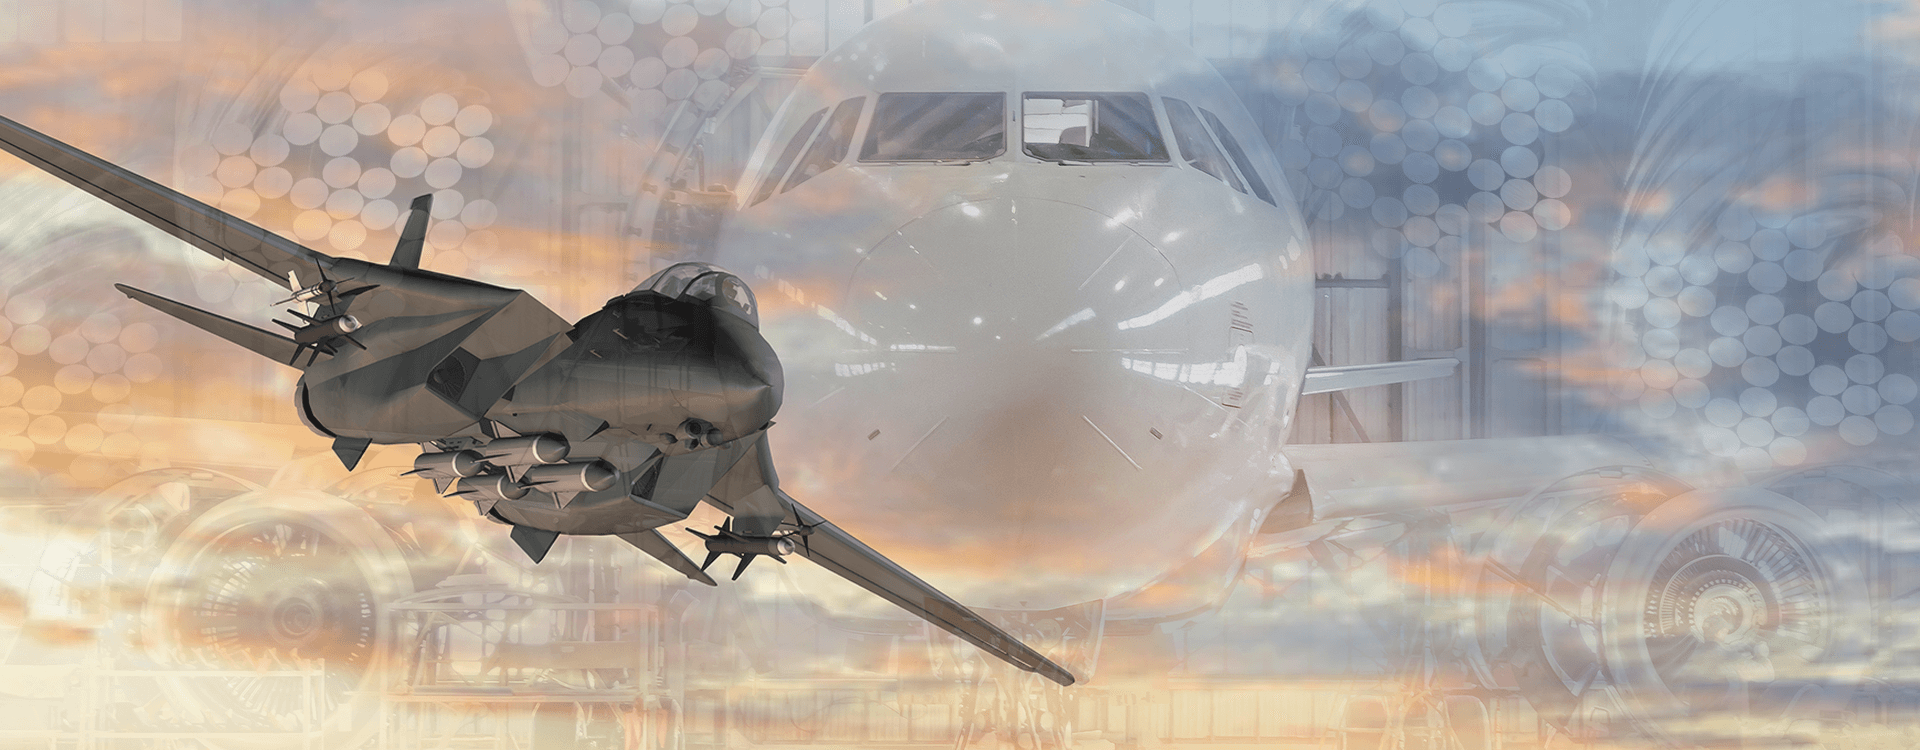 QML-6117 certified assembly and testing processes for aerospace application